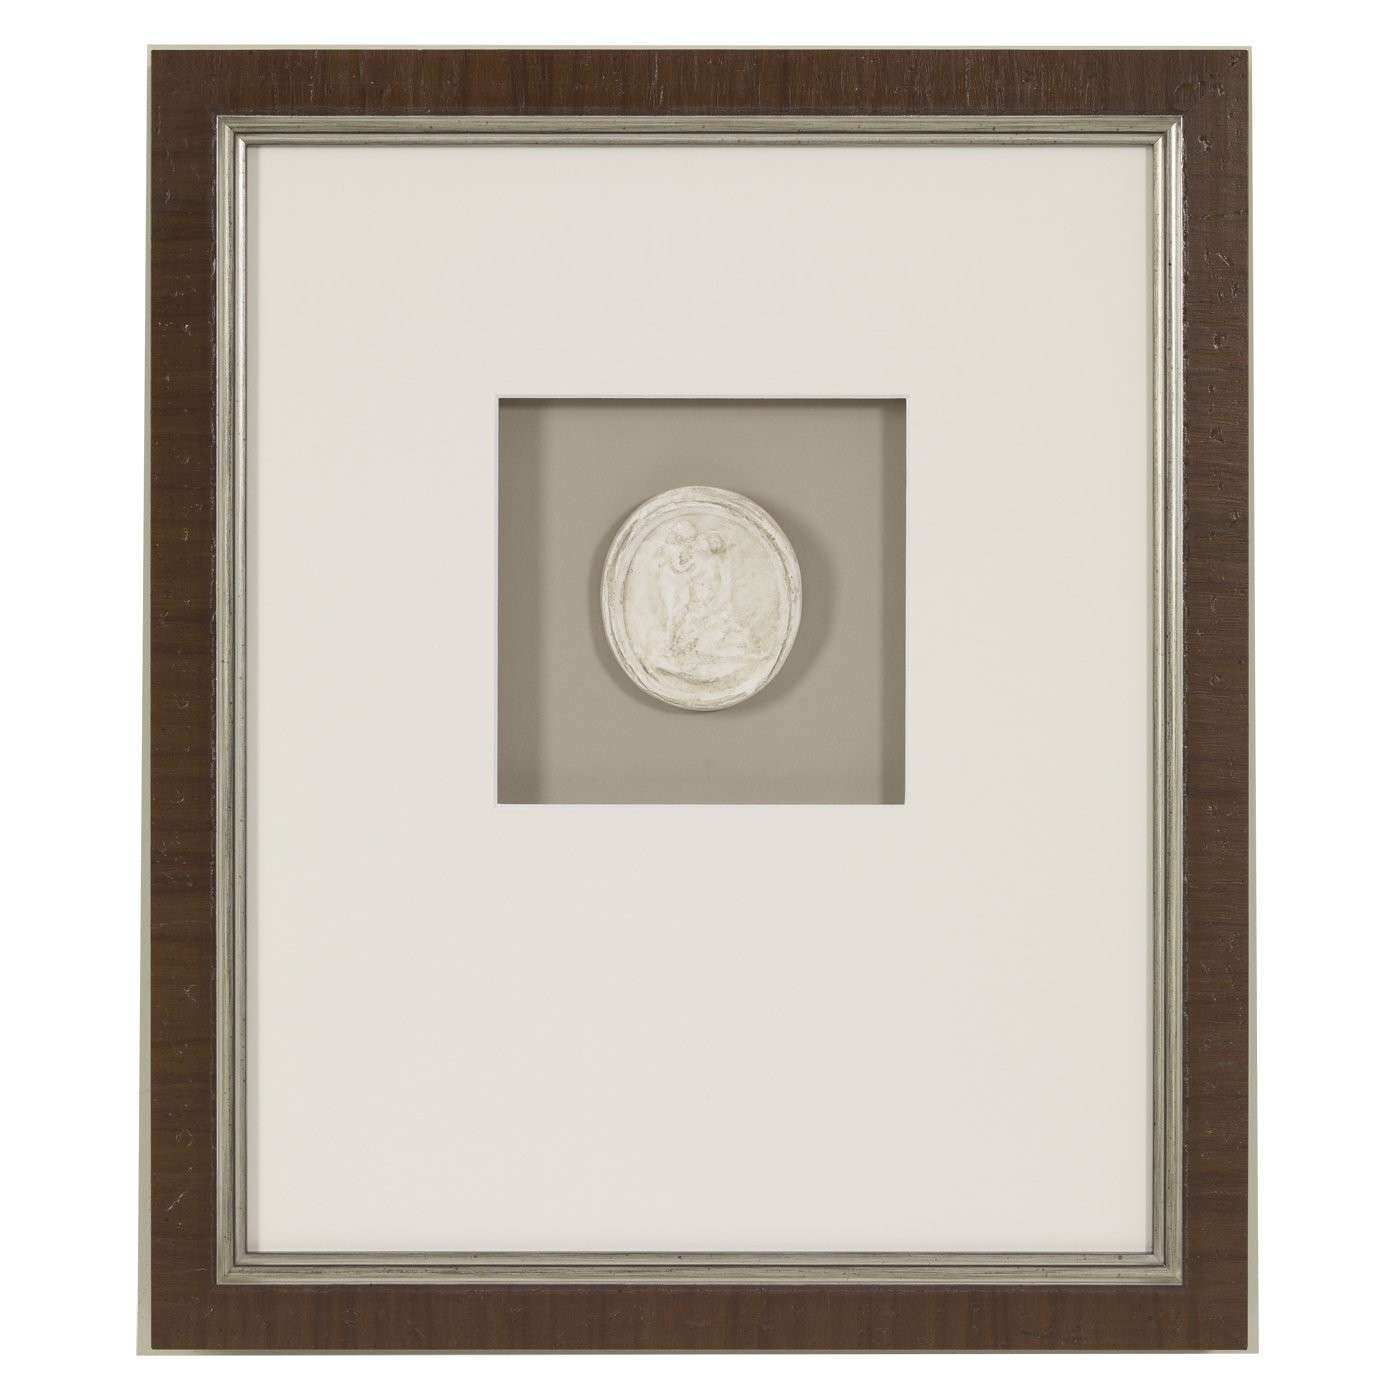 Framed Medallion Wall Art Lovely Roma O Medallions I Framed Art  sc 1 st  Emily Garrison : framed medallion wall art - www.pureclipart.com